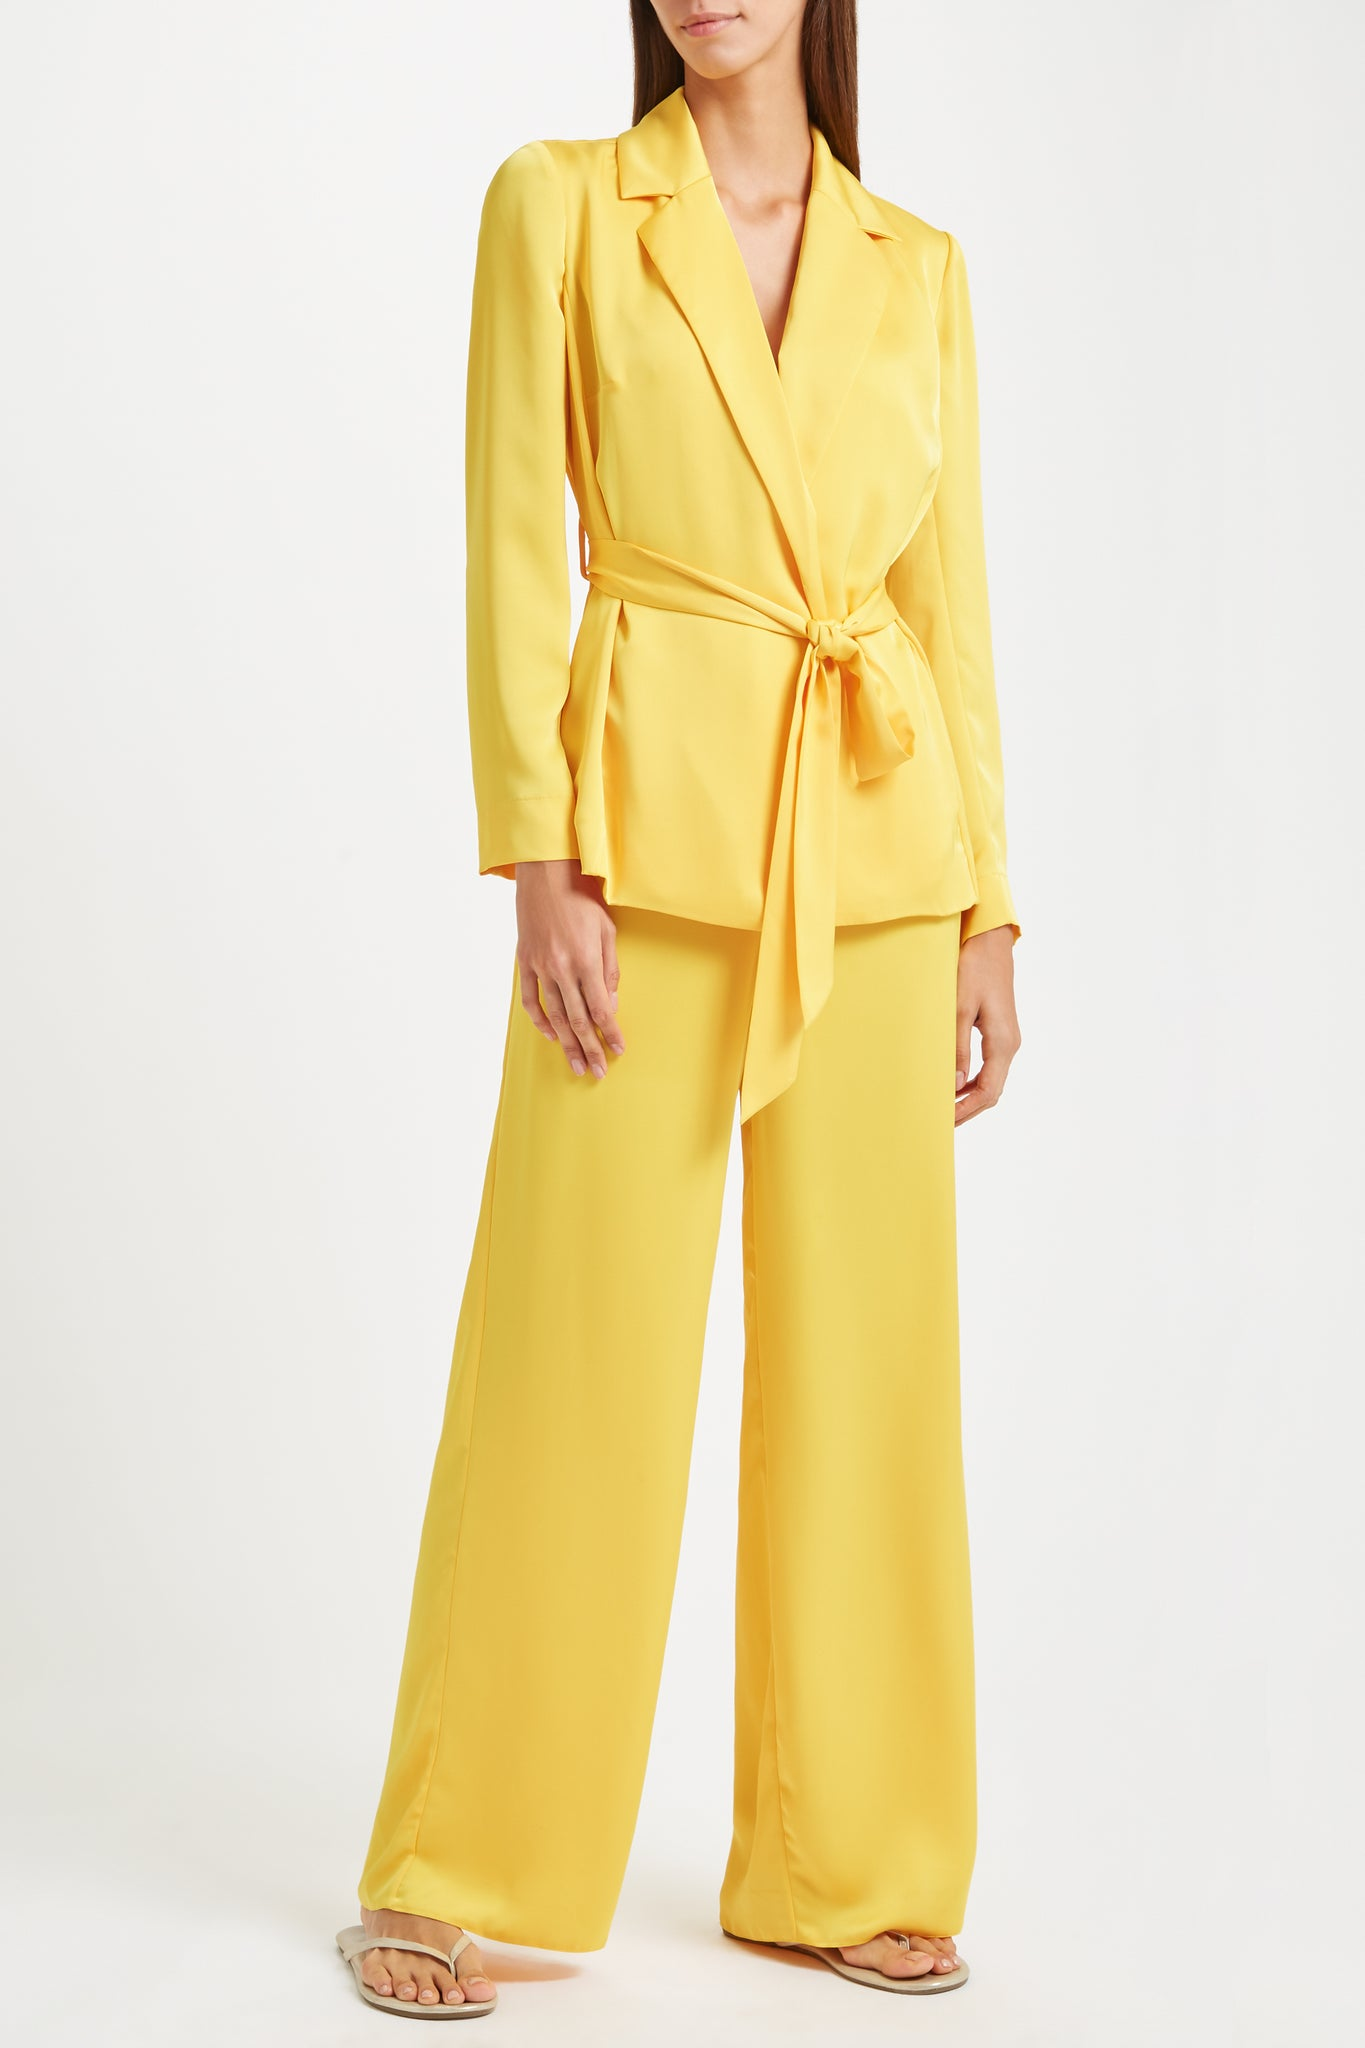 Kalmar Anouk Jacket in yellow poly satin